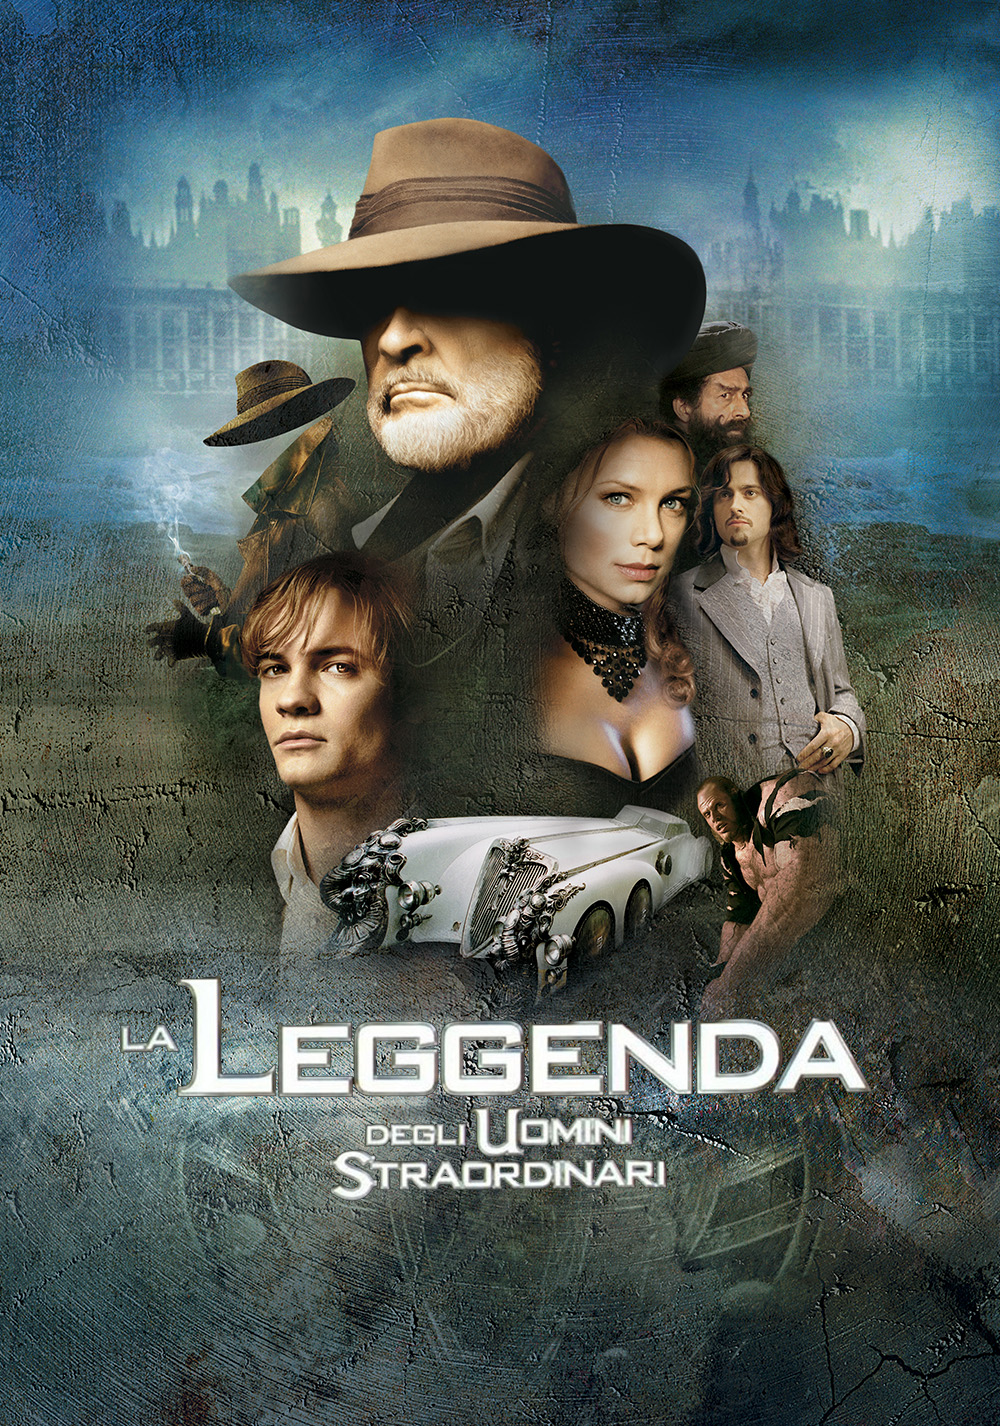 league of extraordinary gentlemen Directed by stephen norrington with sean connery, stuart townsend, peta wilson, jason flemyng in an alternate victorian age world, a group of famous contemporary fantasy, science fiction and adventure characters team up on a secret mission.